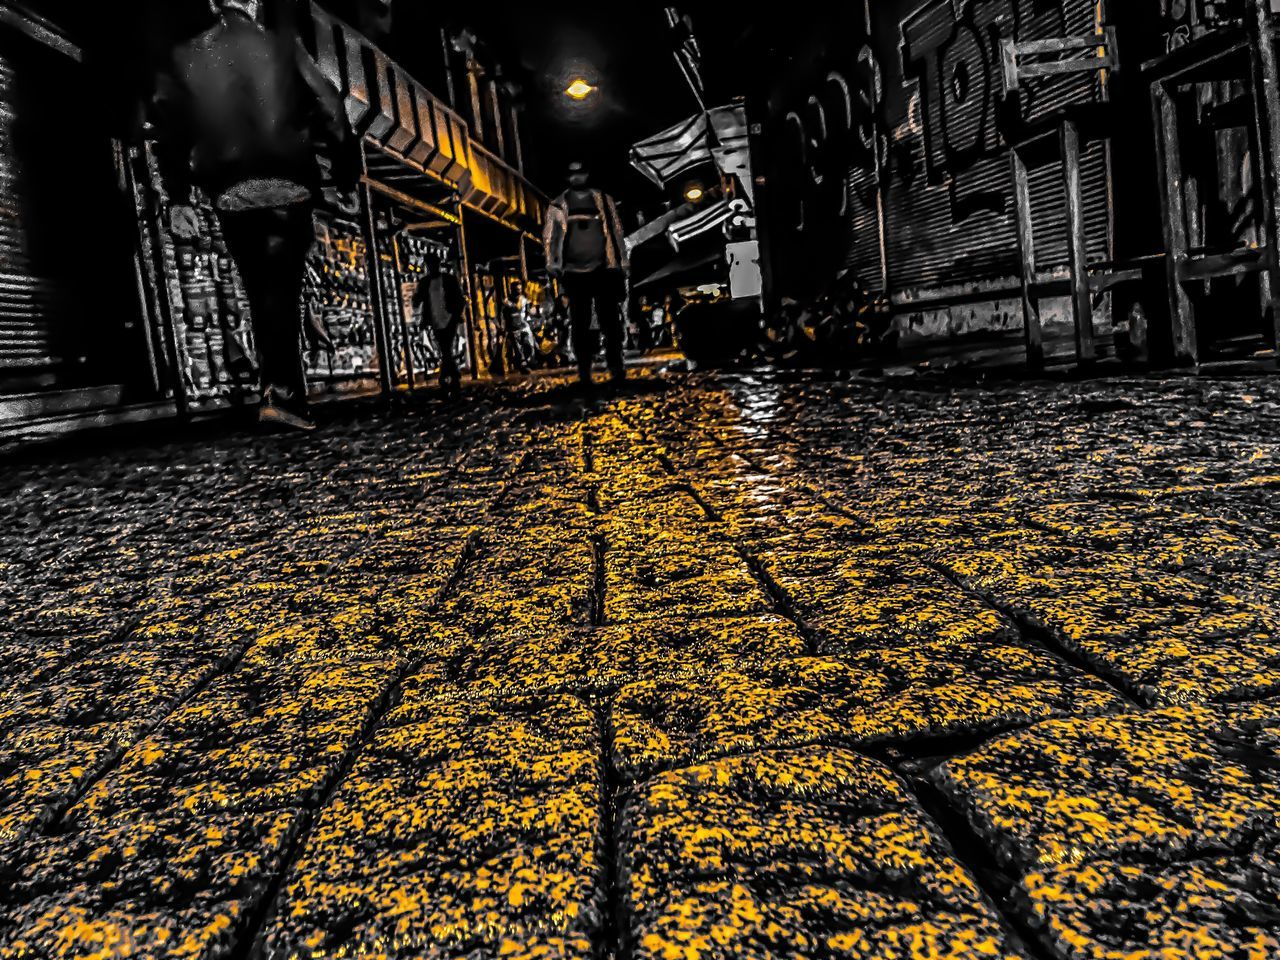 Istanbul Night Architecture The Way Forward Built Structure Illuminated No People Outdoors Building Exterior City Paving Stone Sidewalk